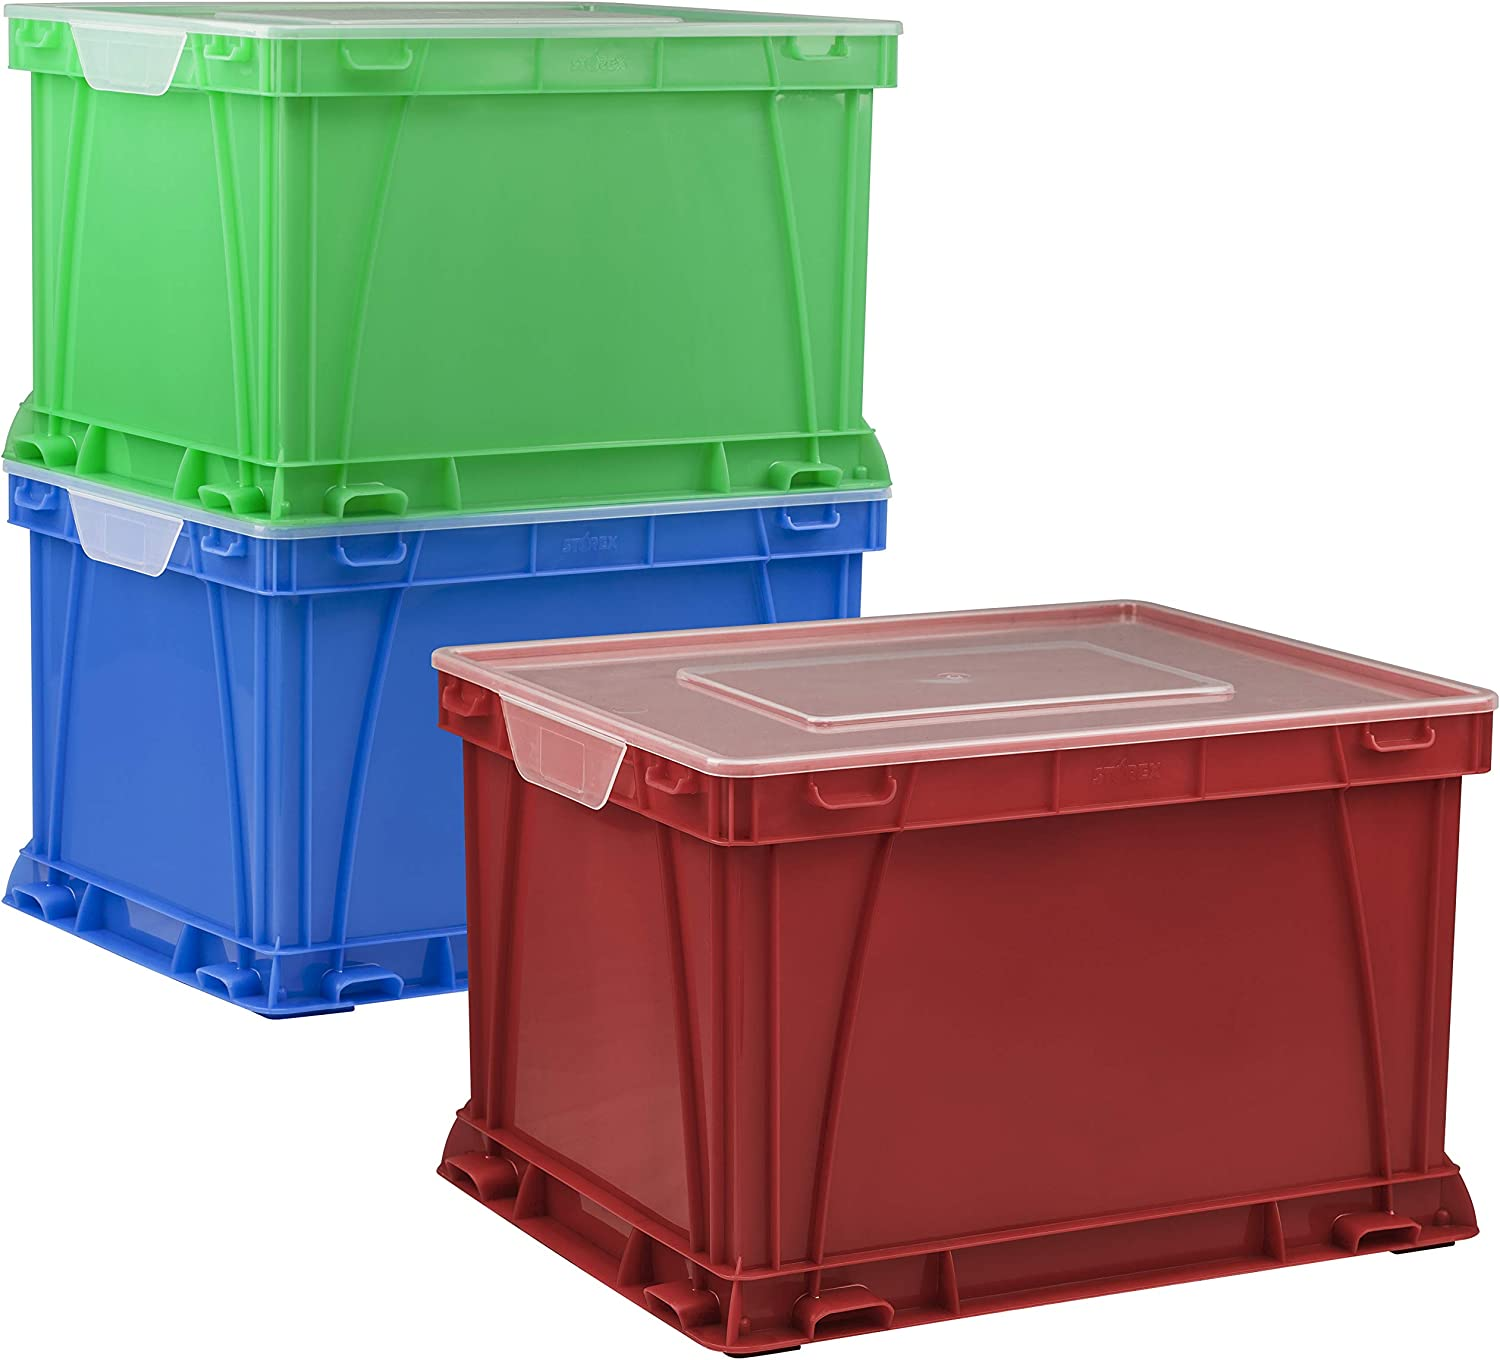 Storex Storage and Filing Cube, 17.25 x 14.25 x 10.5 Inches, Assorted Colors/Clear, Case of 3 (STX62001U03C)